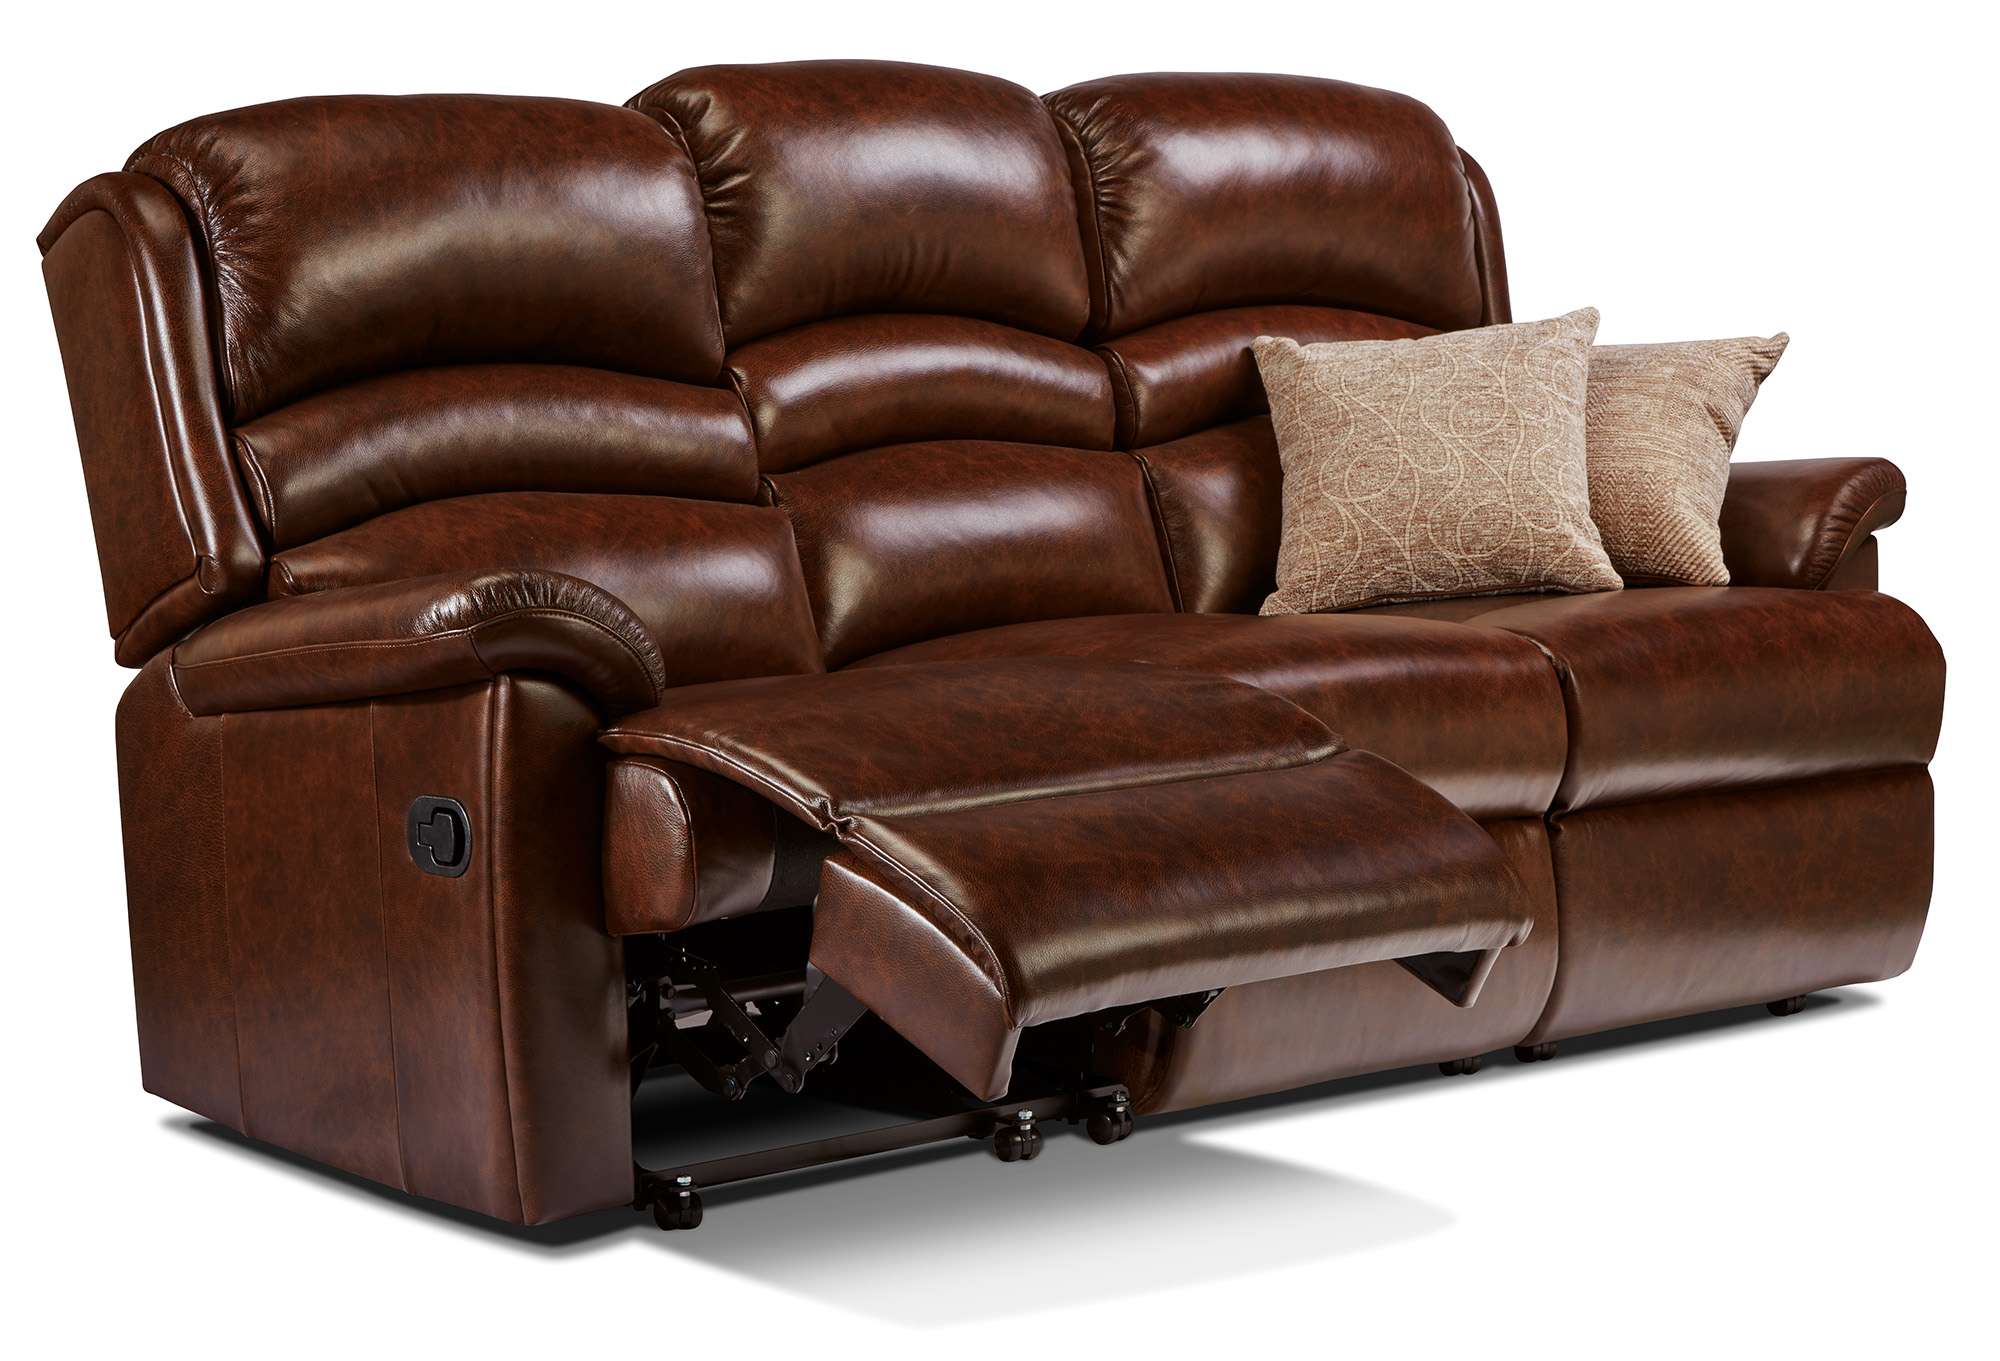 recliner riser chairs uk bedroom lounge target olivia standard leather reclining 3-seater settee - sherborne upholstery